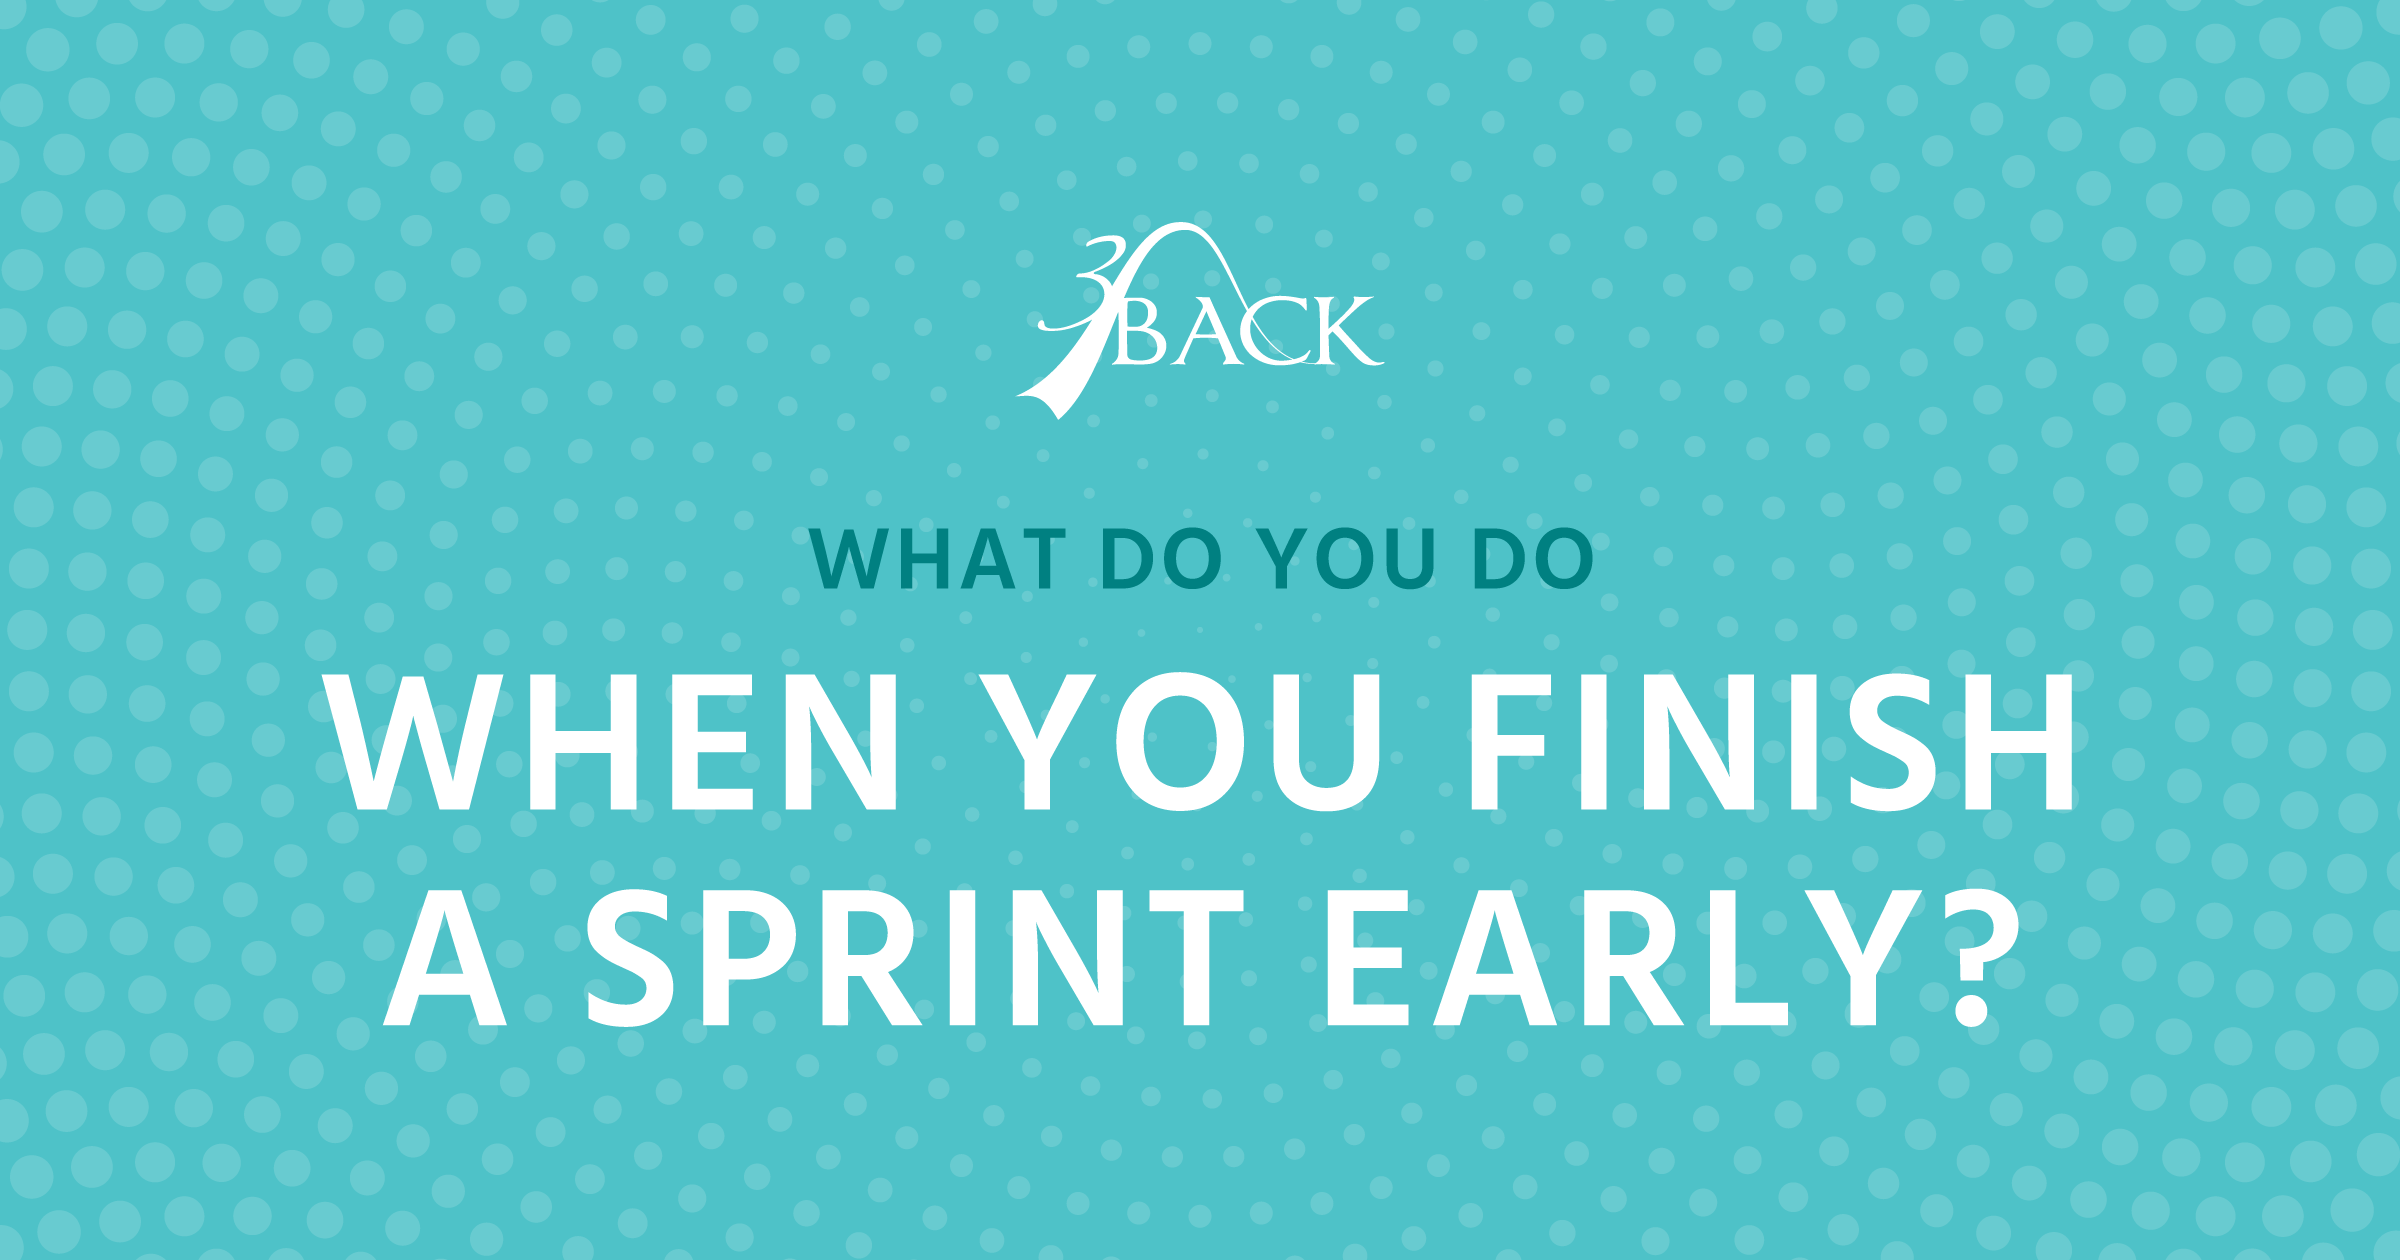 3Back-Finish-A-Sprint-Early